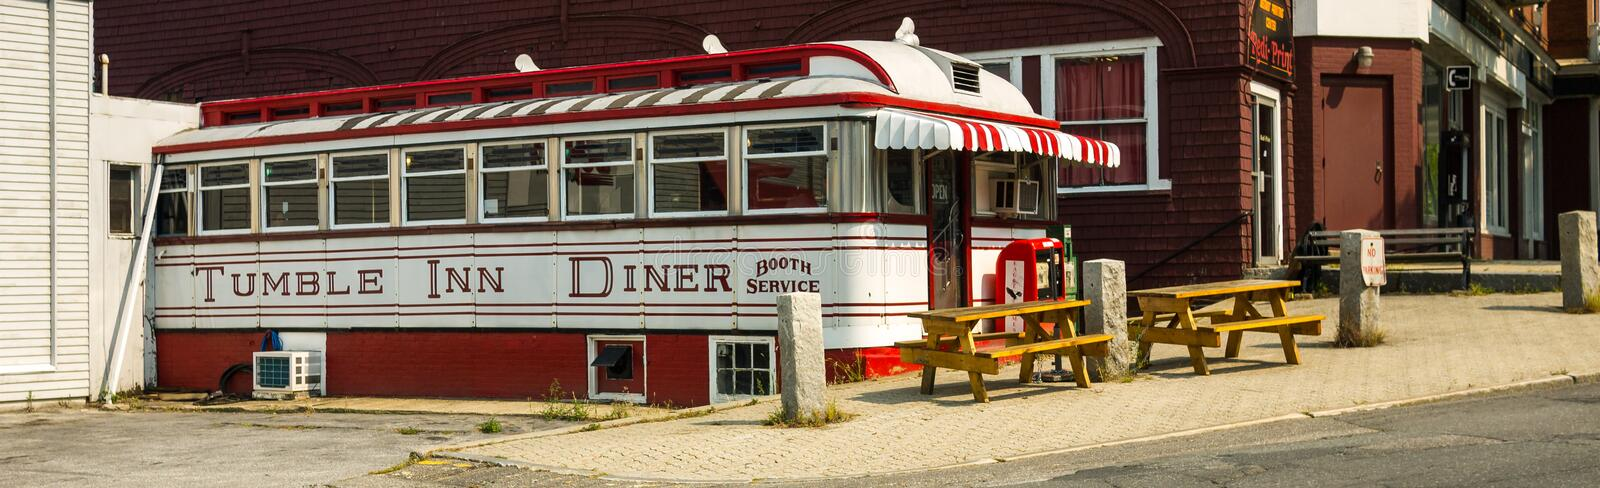 Download Tumble Inn Diner - Wide View Editorial Stock Photo - Image: 25782233